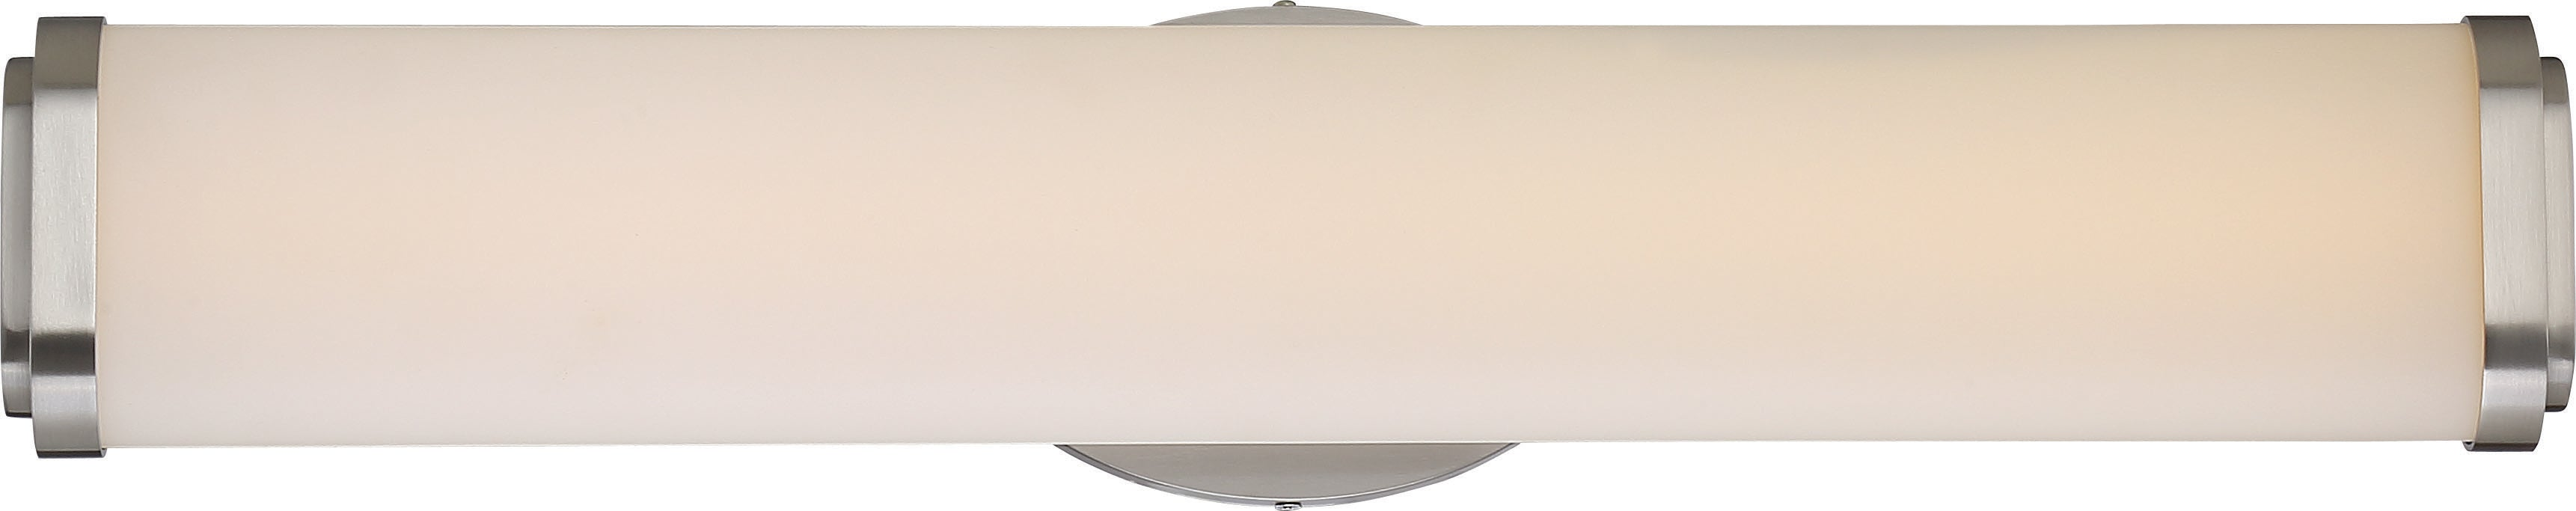 """Nuvo Pace 1-Light 24"""" Double Wall Sconce Vanity & Wall Fixture In Brushed Nickel"""